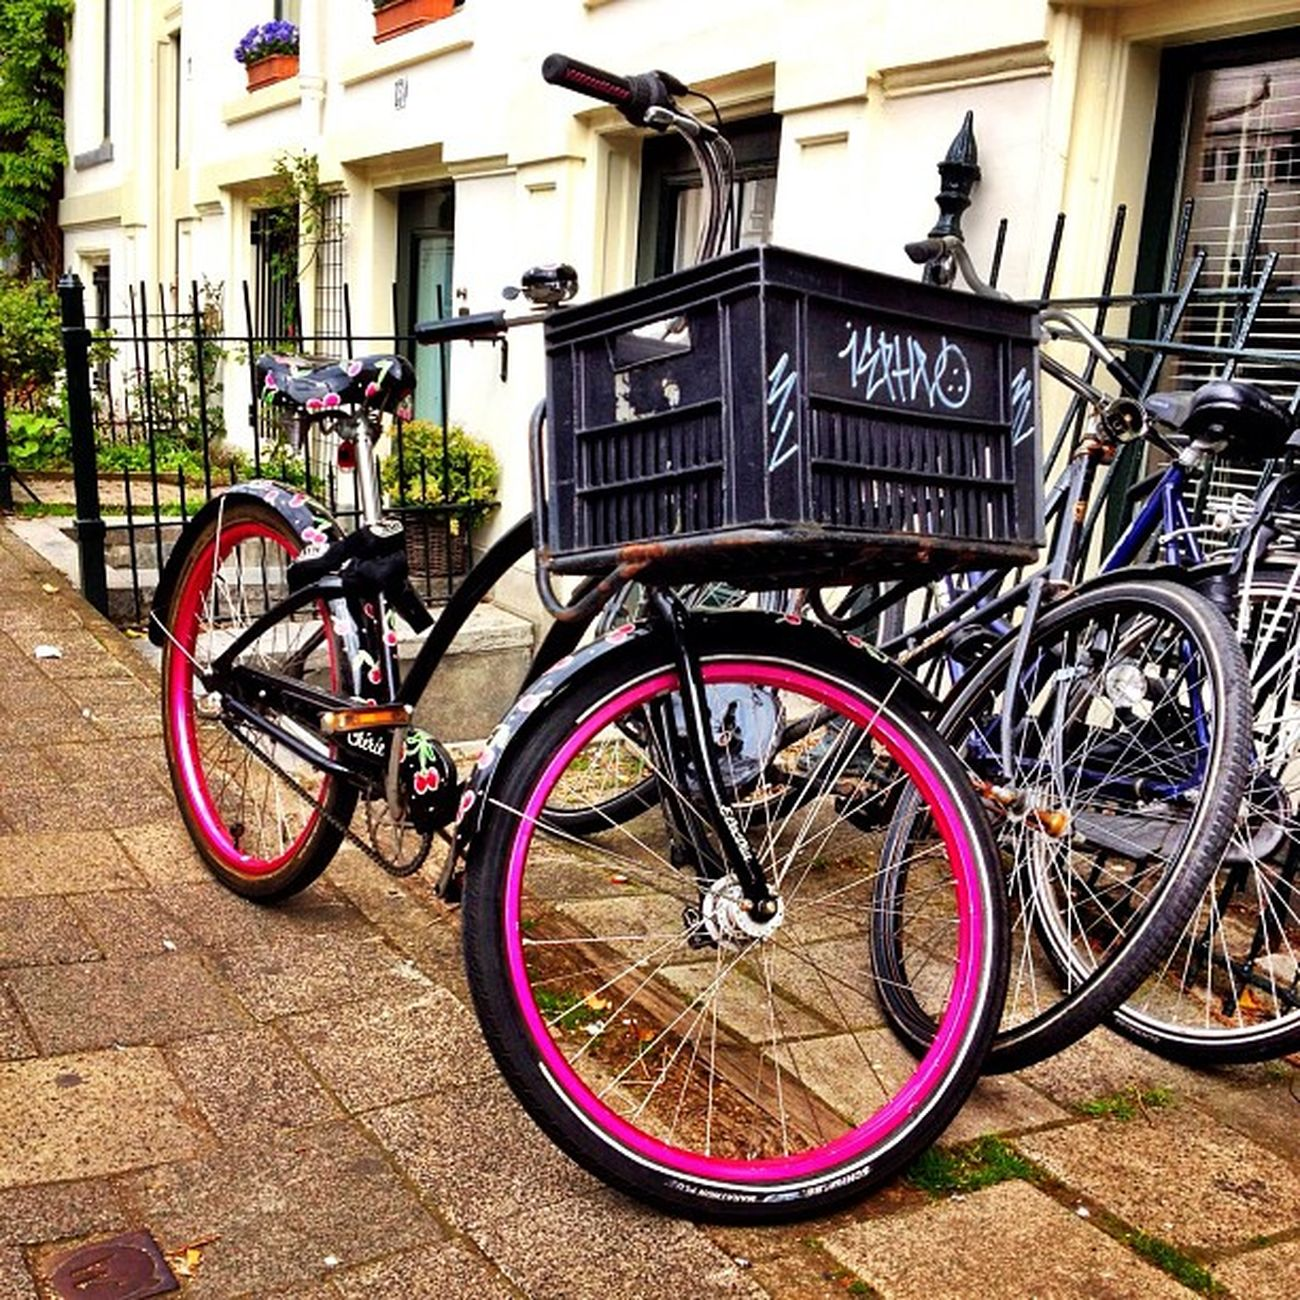 another #dutch #bike in #amsterdam ? #jj_forum #jj #igersholland #holland #ubiquography #pink Amsterdam Holland Bike Pink Dutch Jj  Jj_forum Ubiquography Igersholland